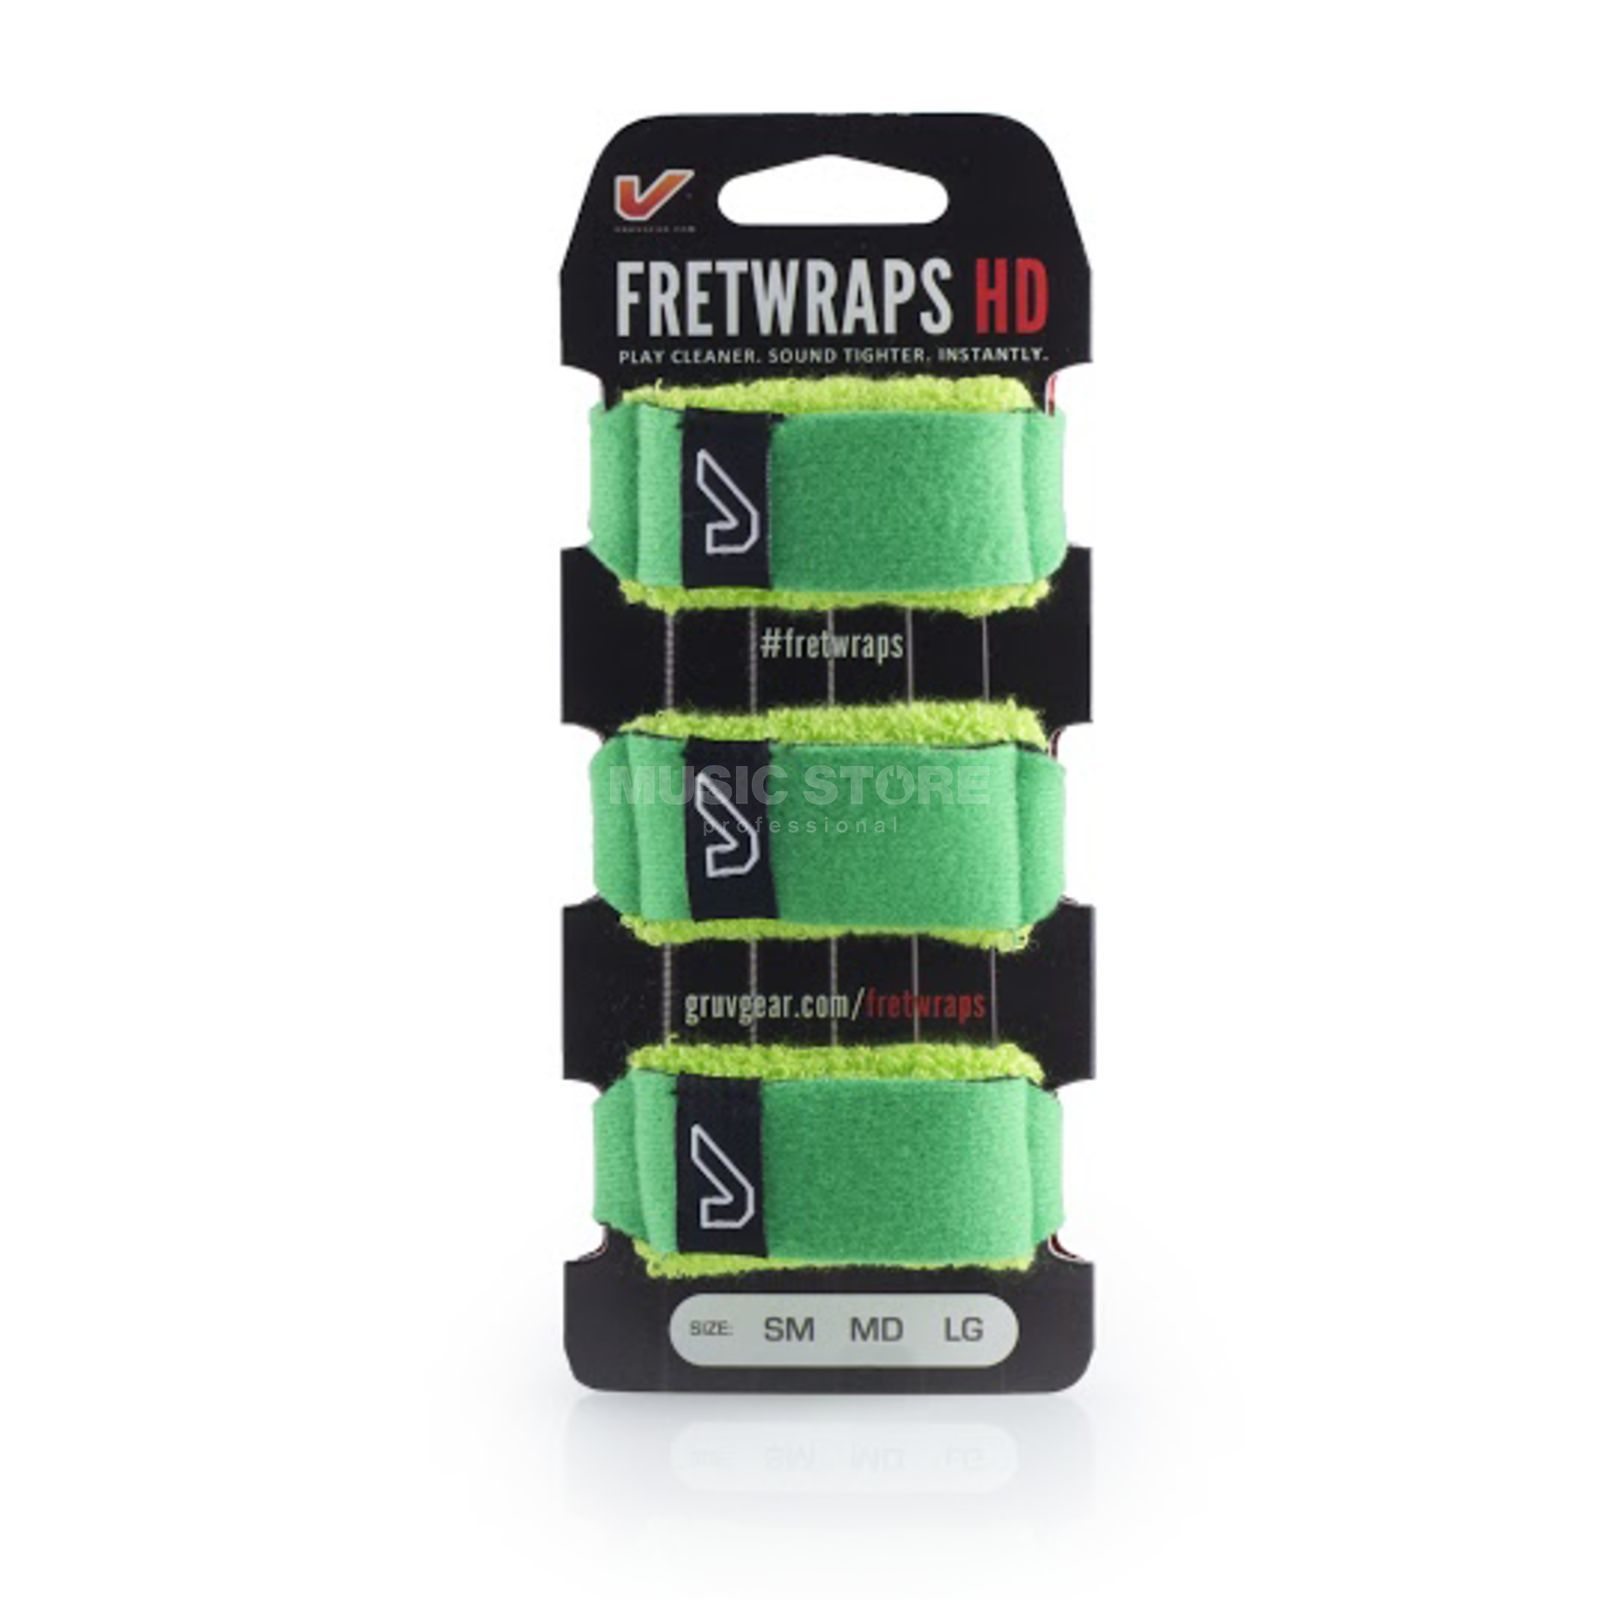 Gruv Gear Fret Wraps HD Leaf Green Large, 3er Pack Produktbillede